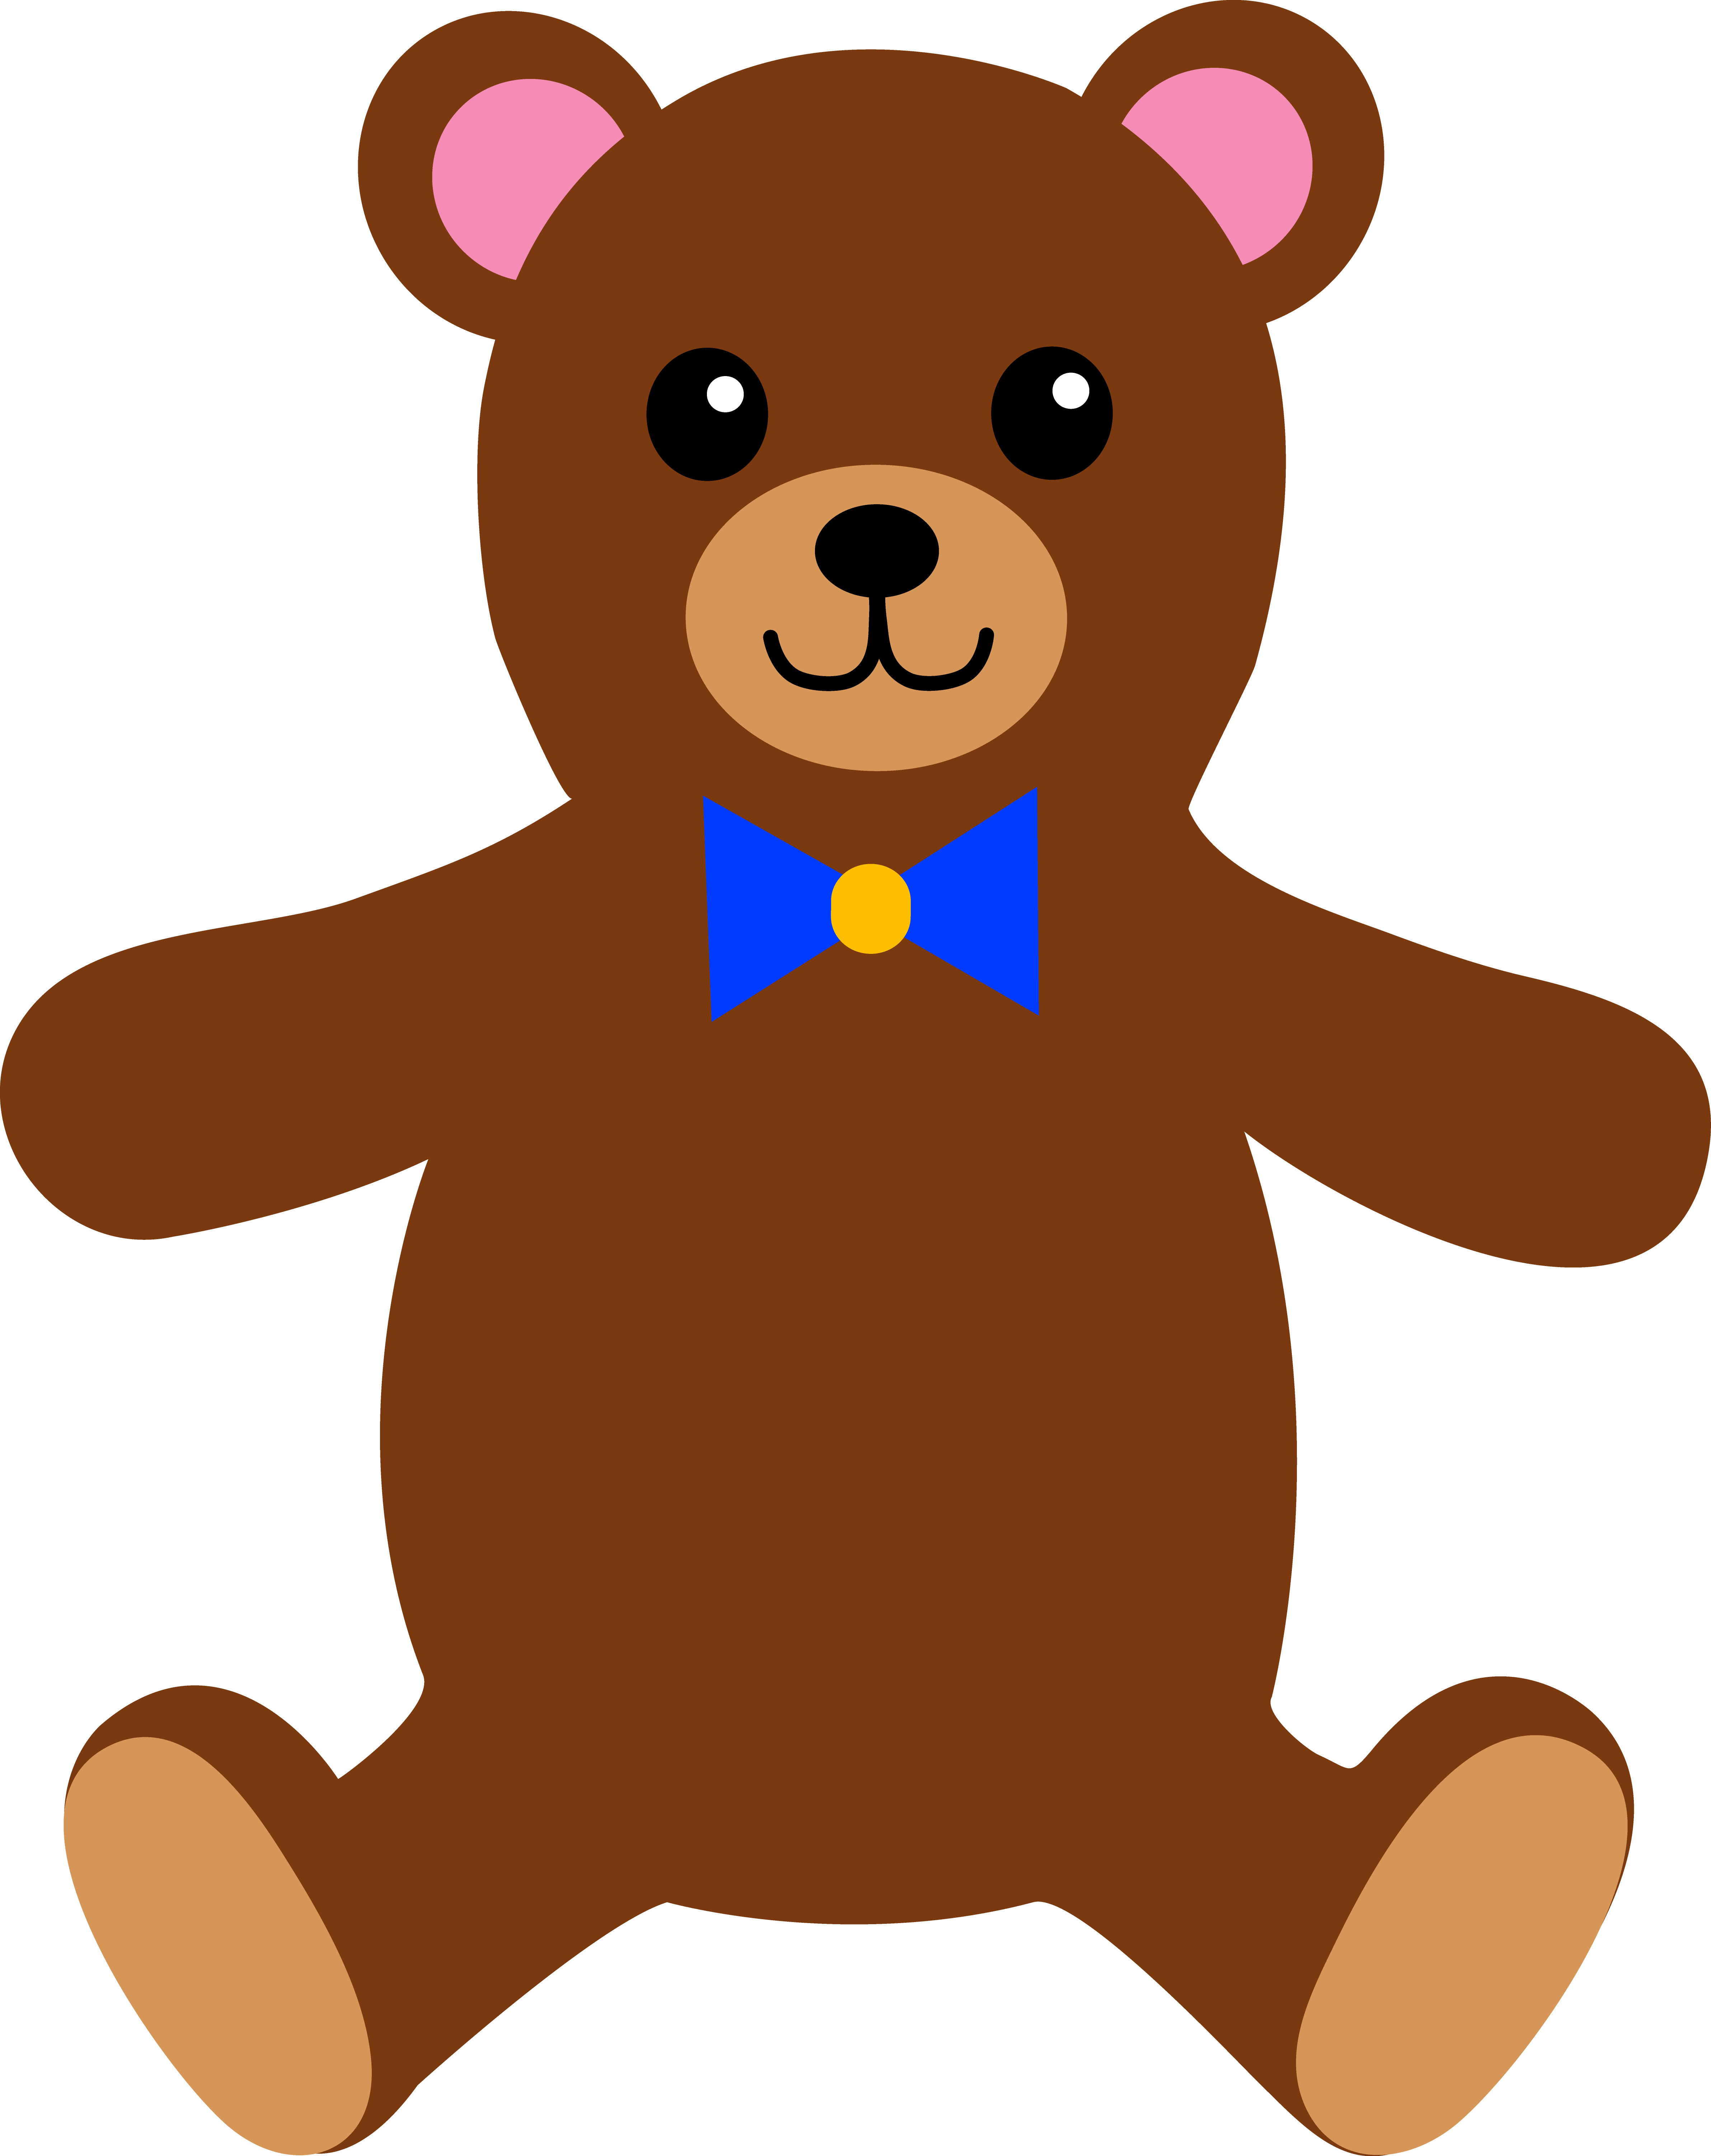 Brown Bear clipart teddy bear Bears Brown Teddy cliparts Clipart